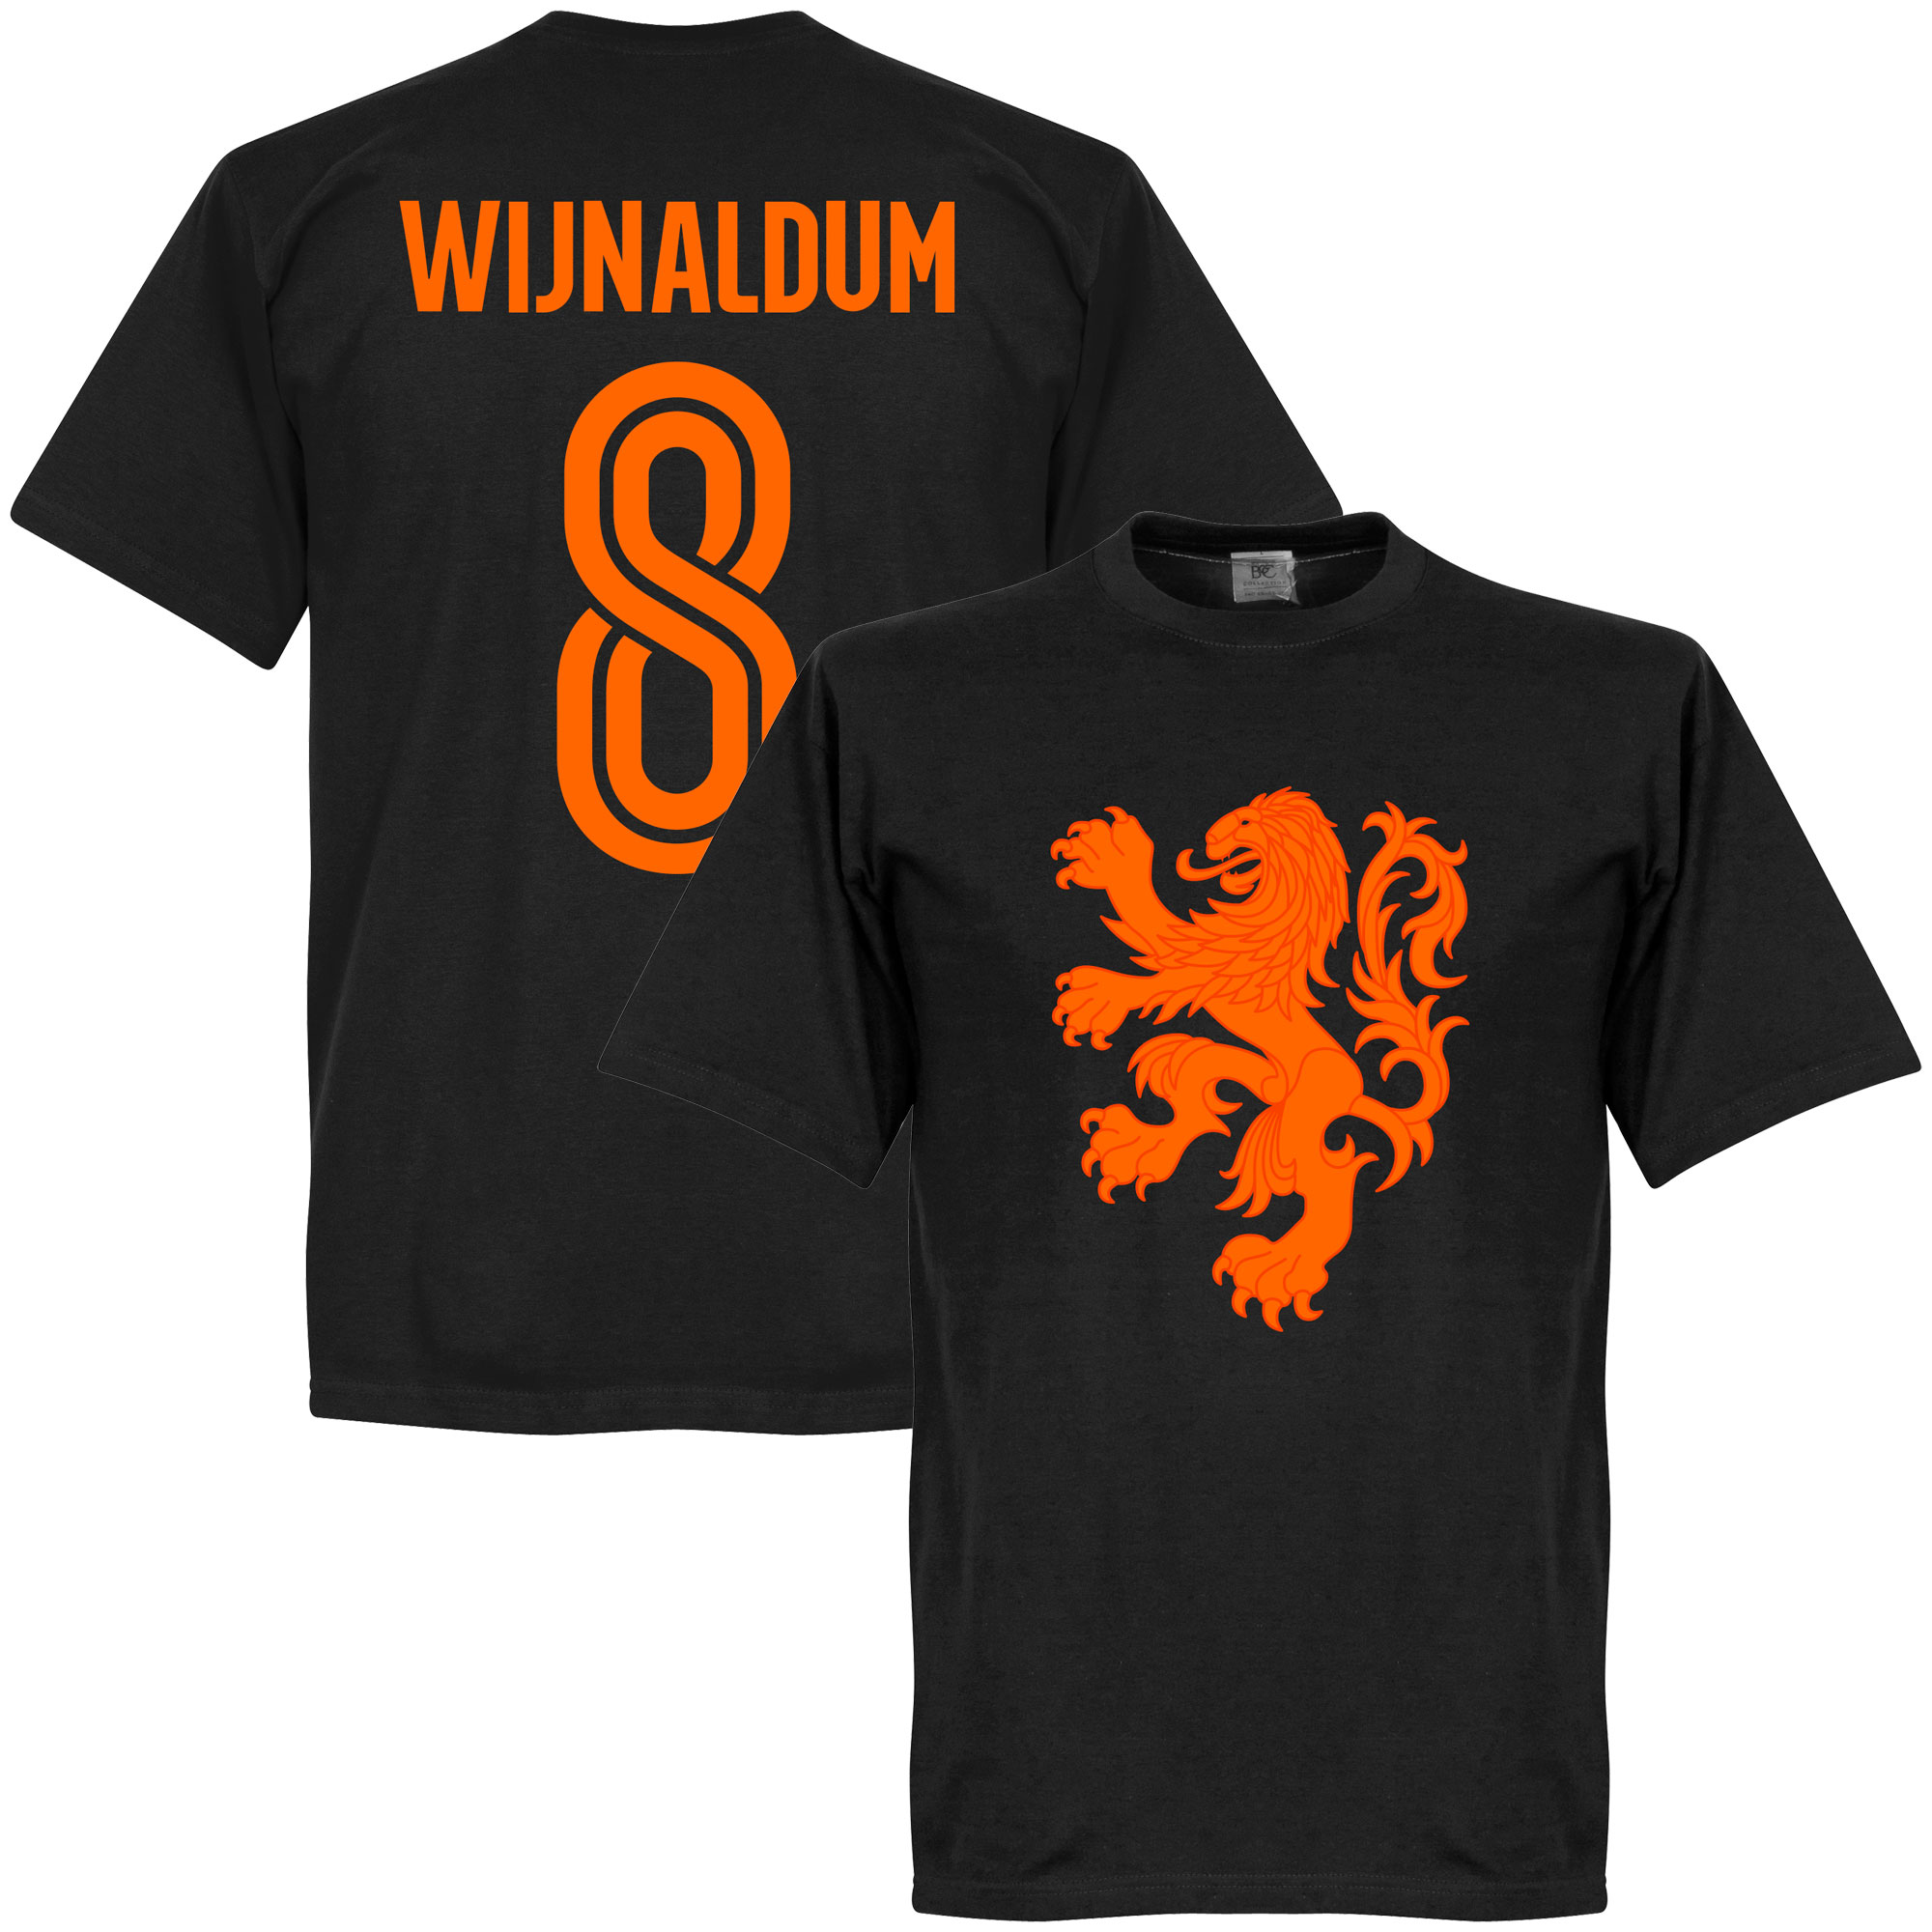 Holland Wijnaldum Lion Tee - Black - M